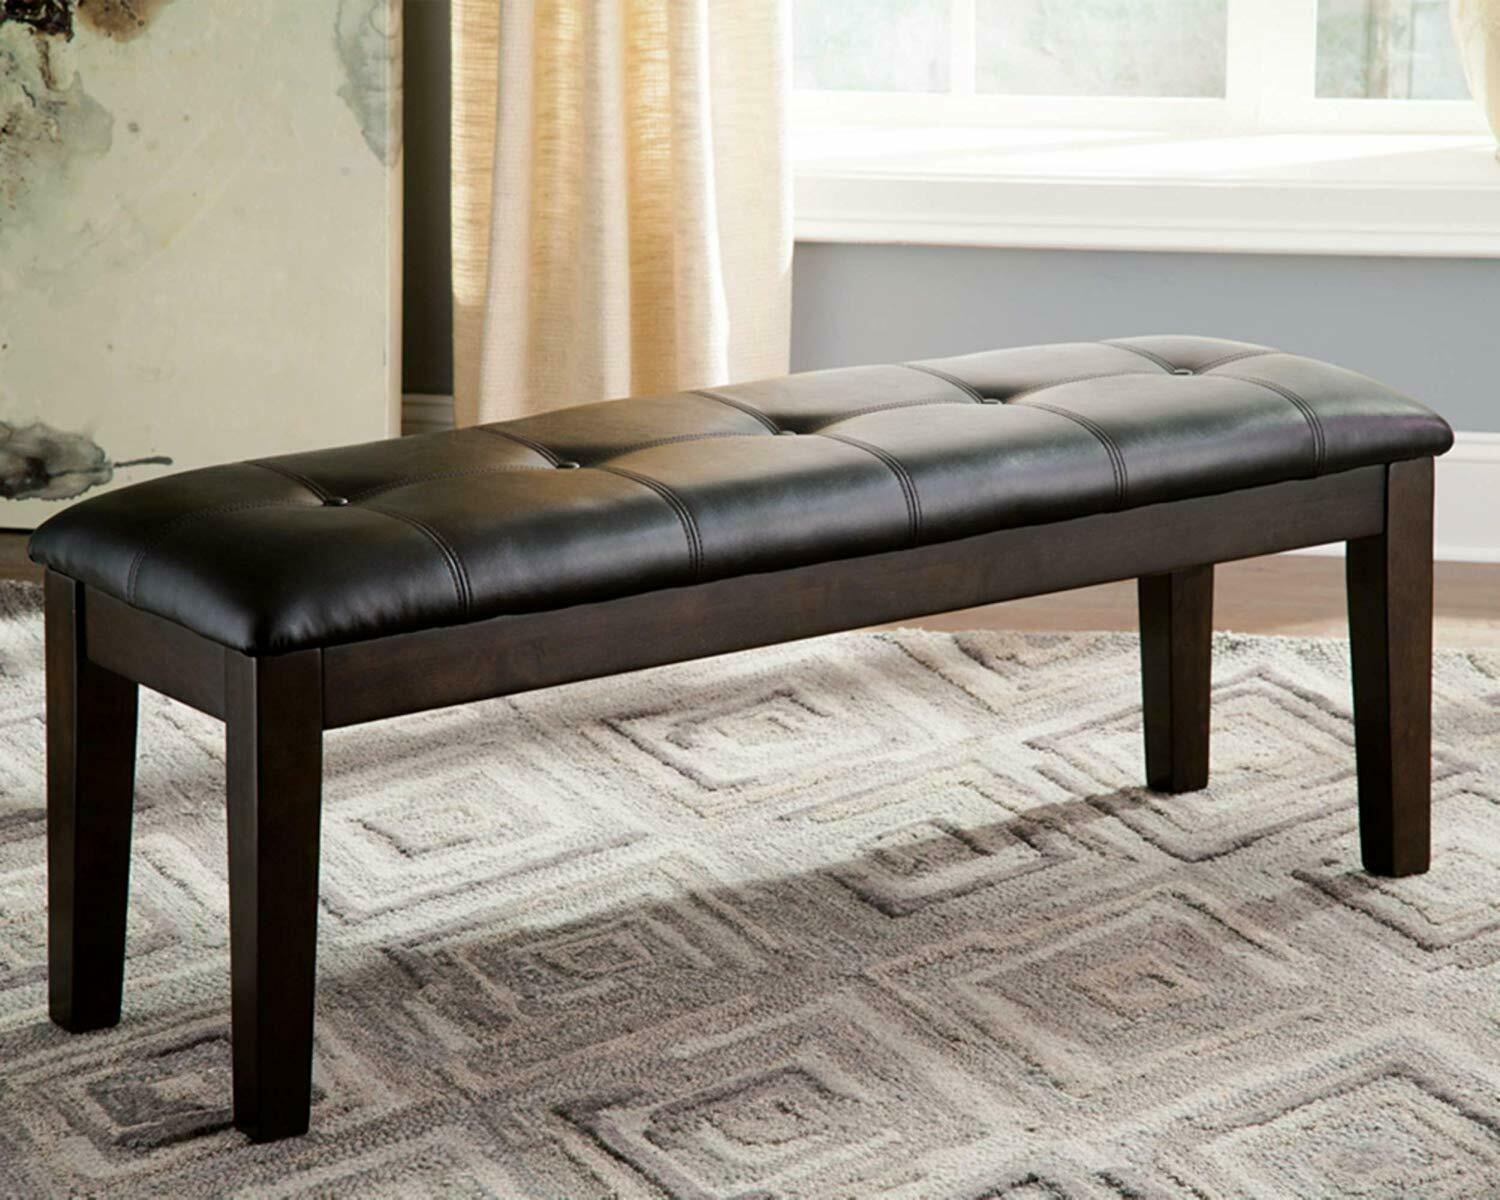 Dining Room Wooden Bench Vinyl Faux Leather Upholstered Casu